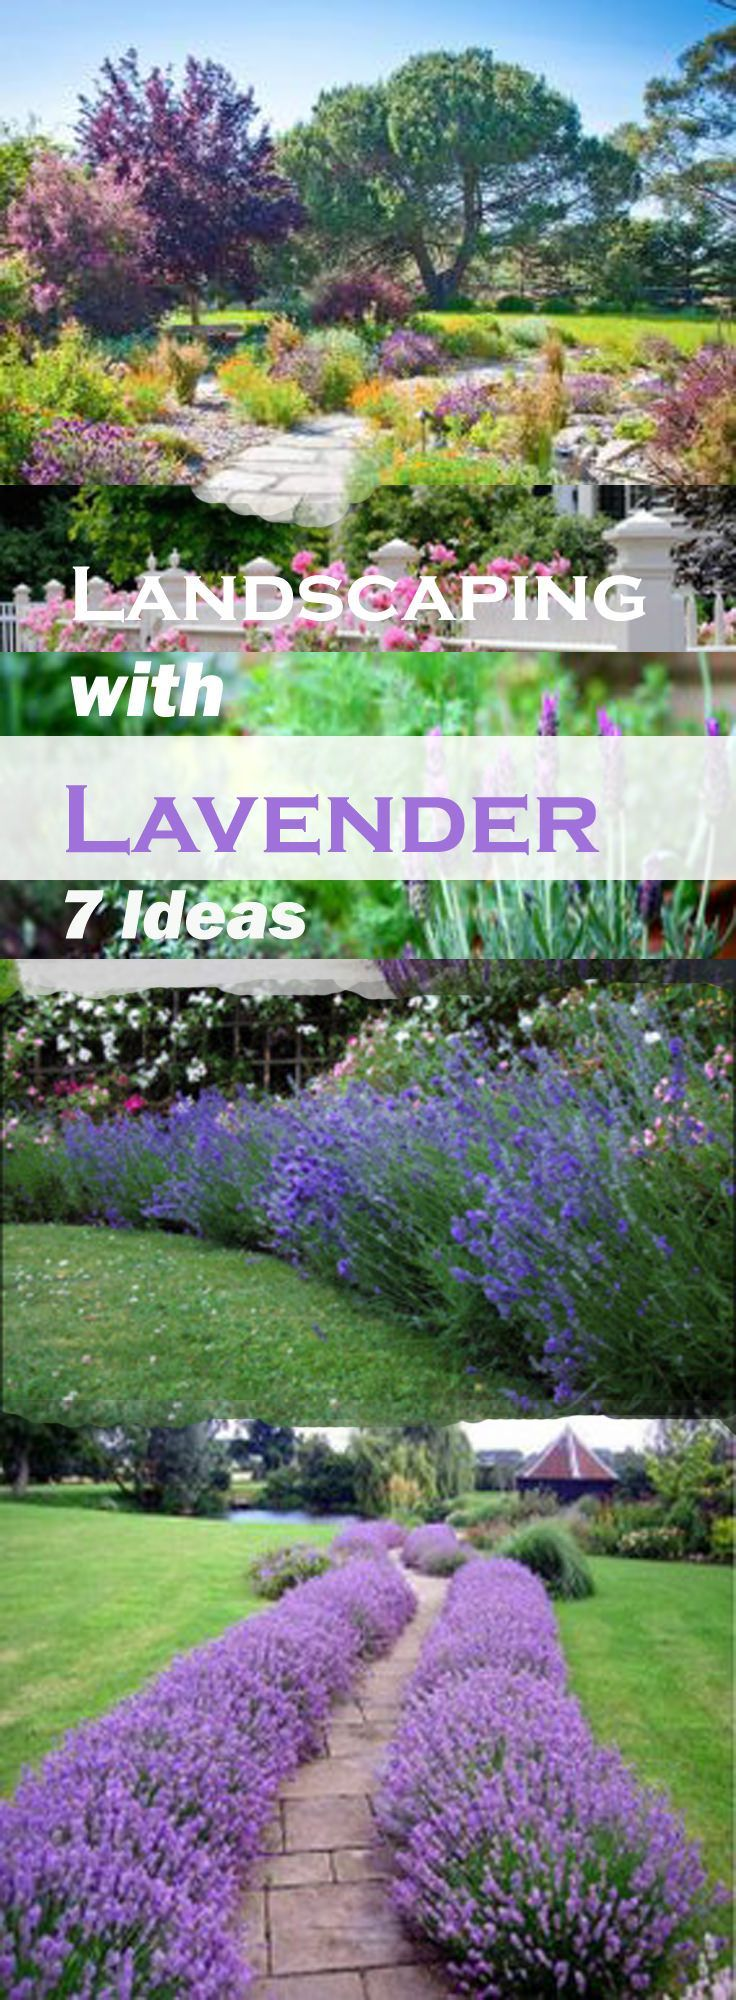 Home and garden front yard - Landscaping With Lavender